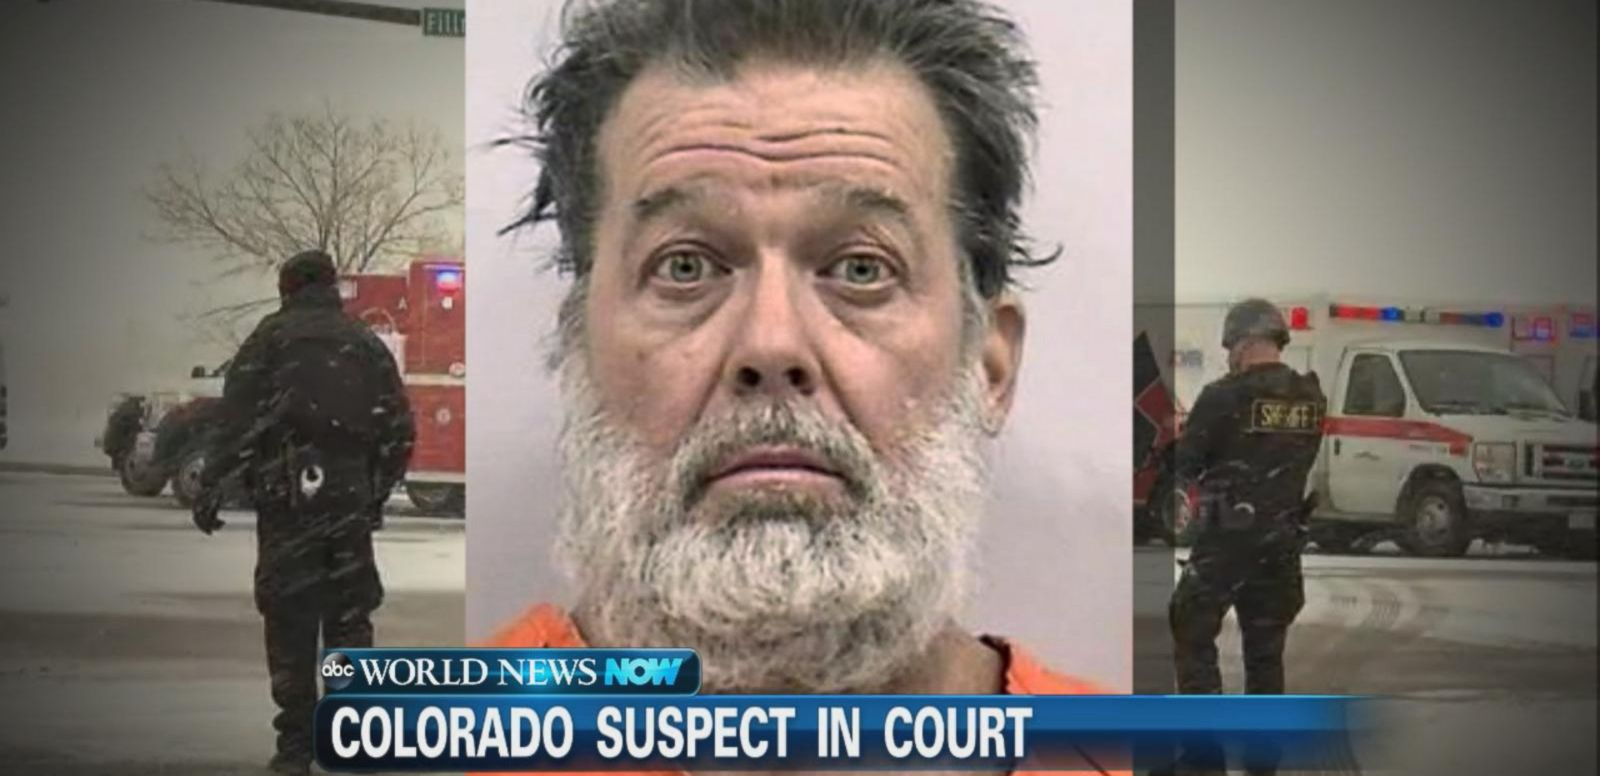 VIDEO: Planned Parenthood Suspect in Custody